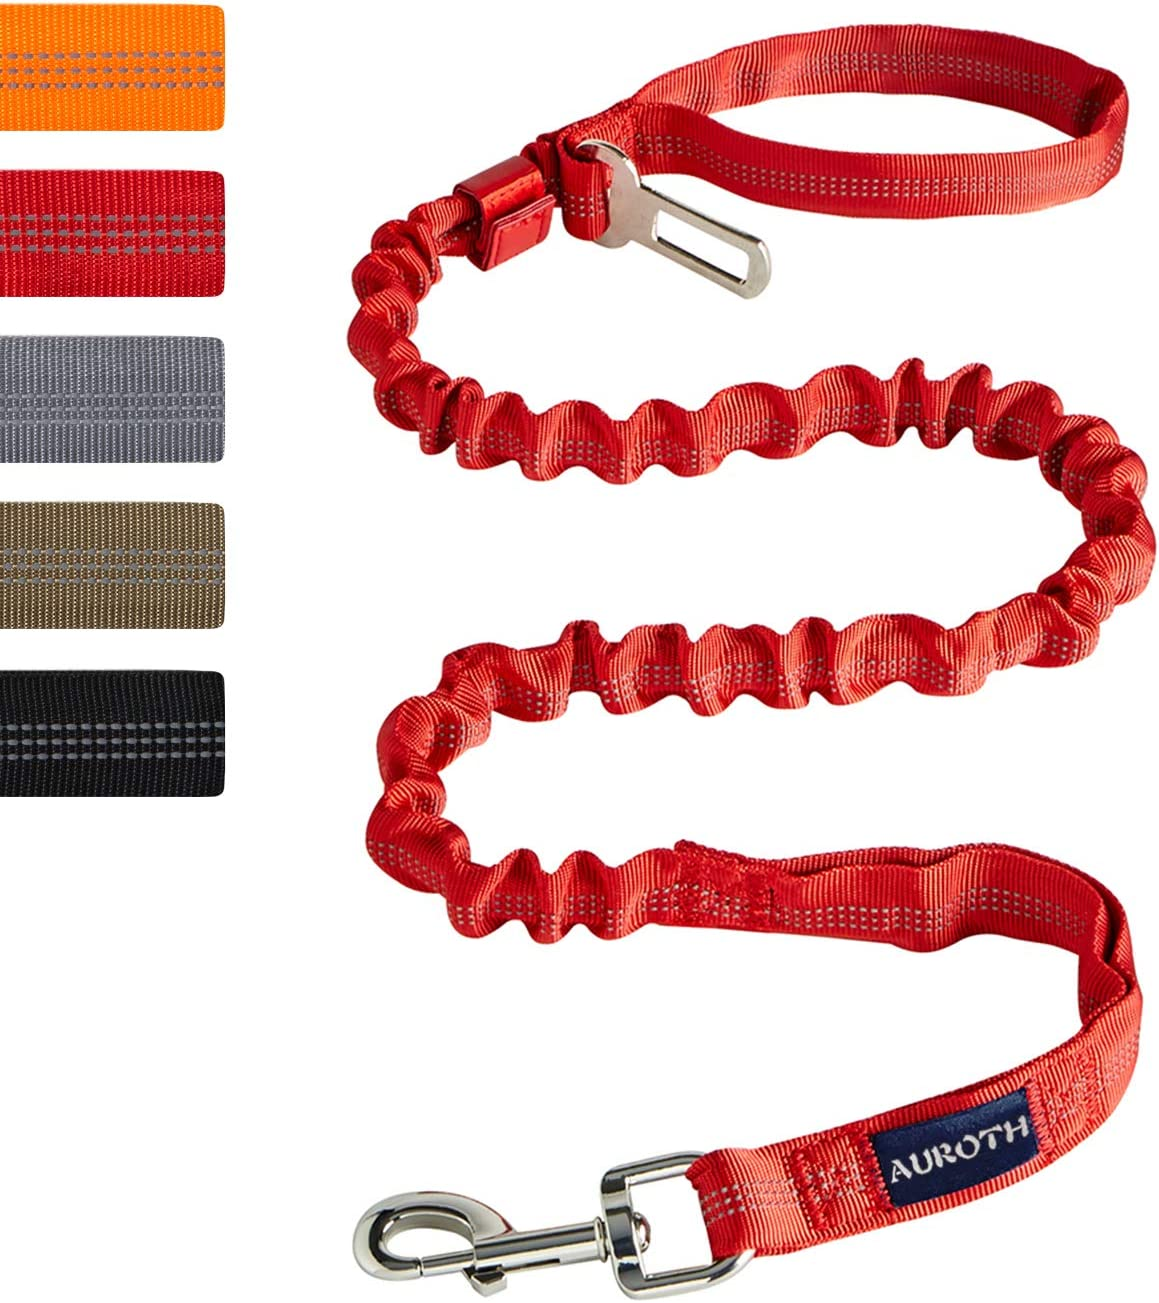 AUROTH Dog Leash Large Dogs, Heavy Duty Dog Leash Bungee, No Pull Dog Leash with Car Seat Belt Shock Absorption, Red Dog Training Leashes for Medium Large Breed Dogs 6FT, 2 Padded Handles : Pet Supplies